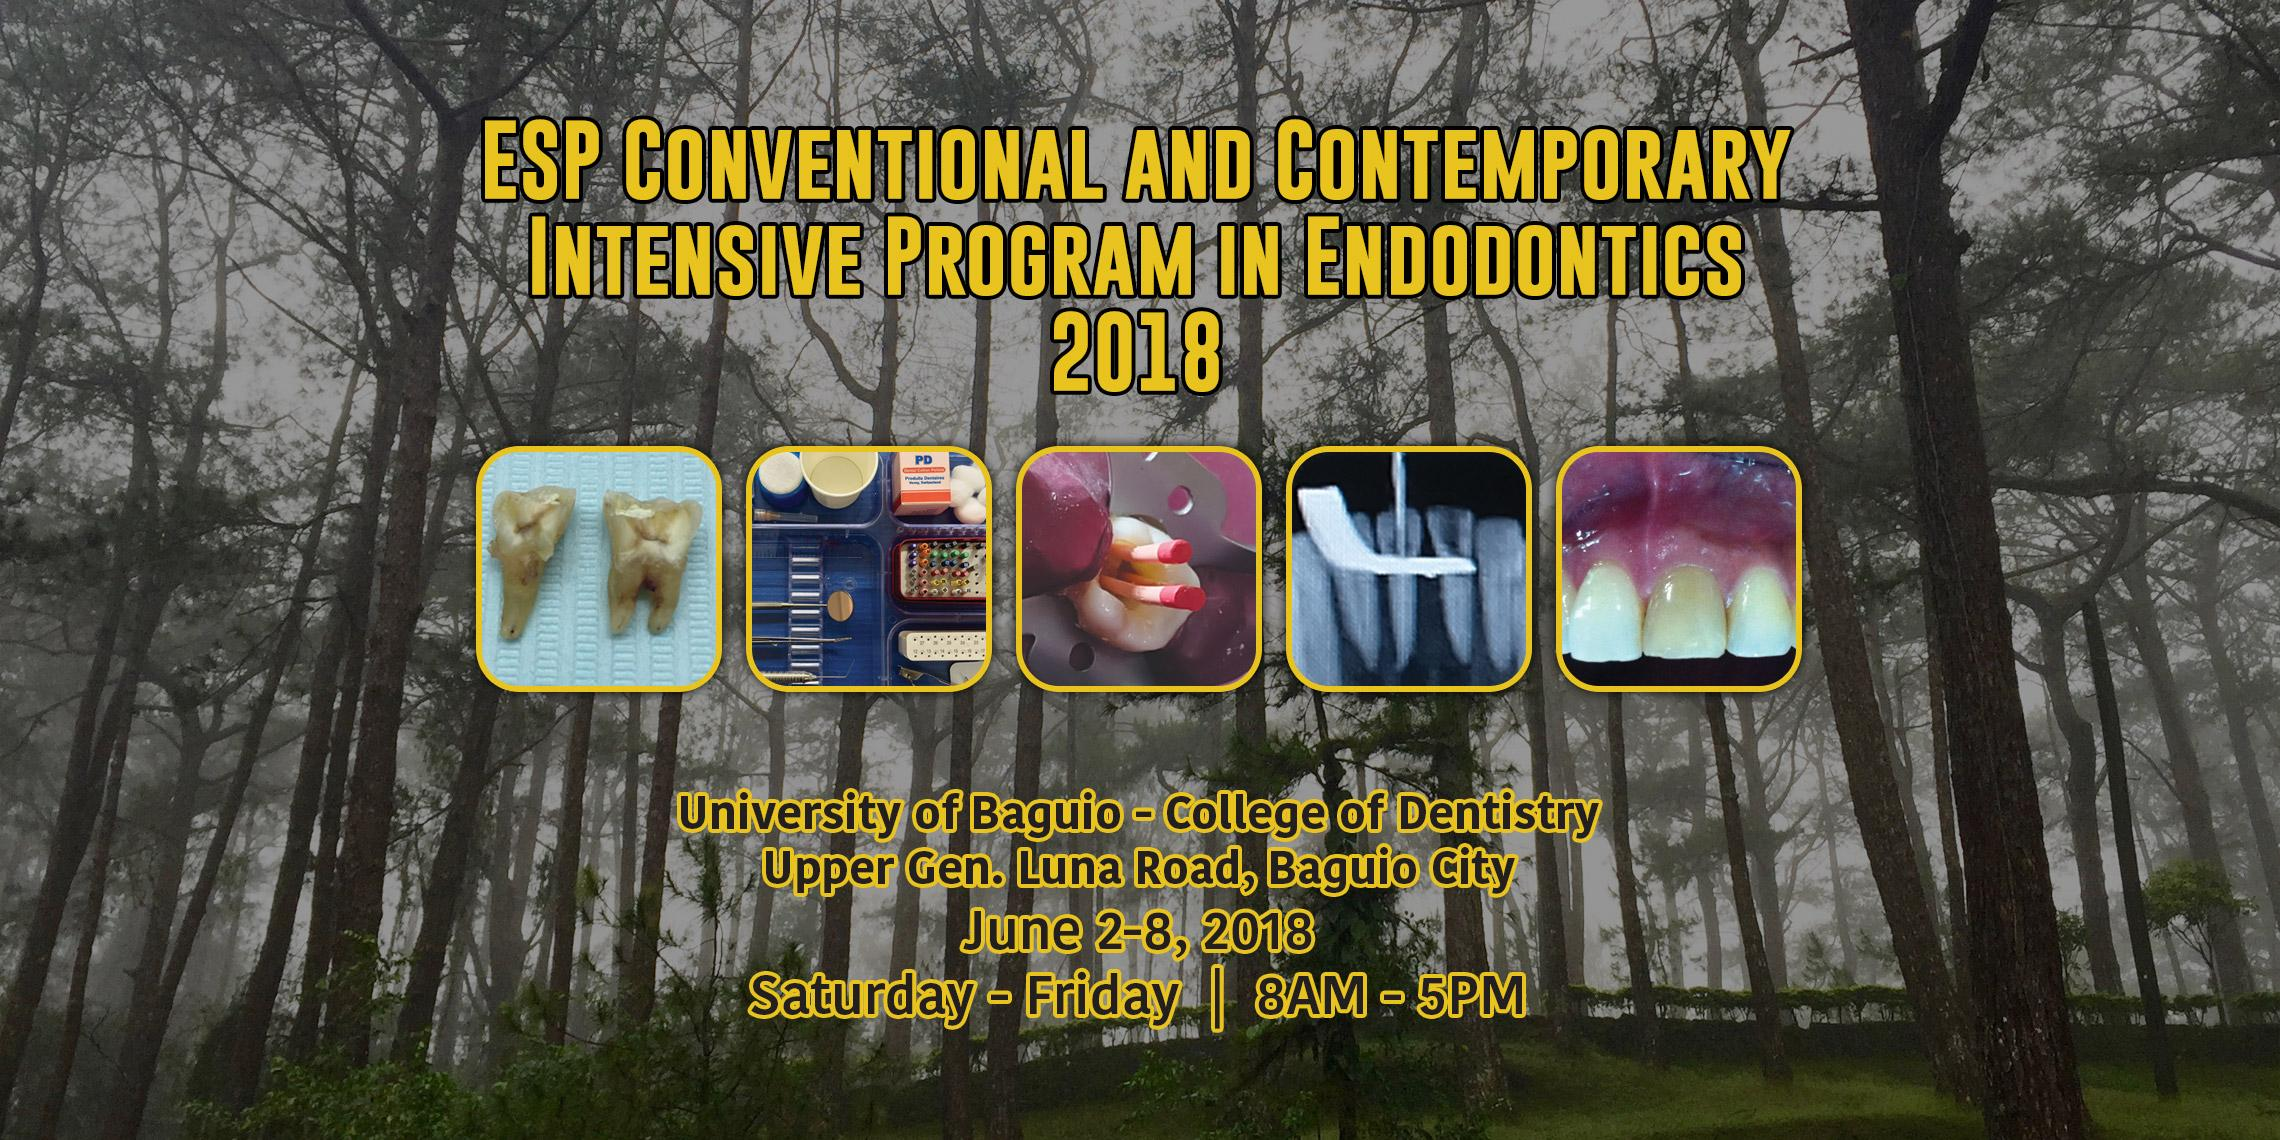 ESP Conventional and Contemporary Intensive Program in Endodontics 2018